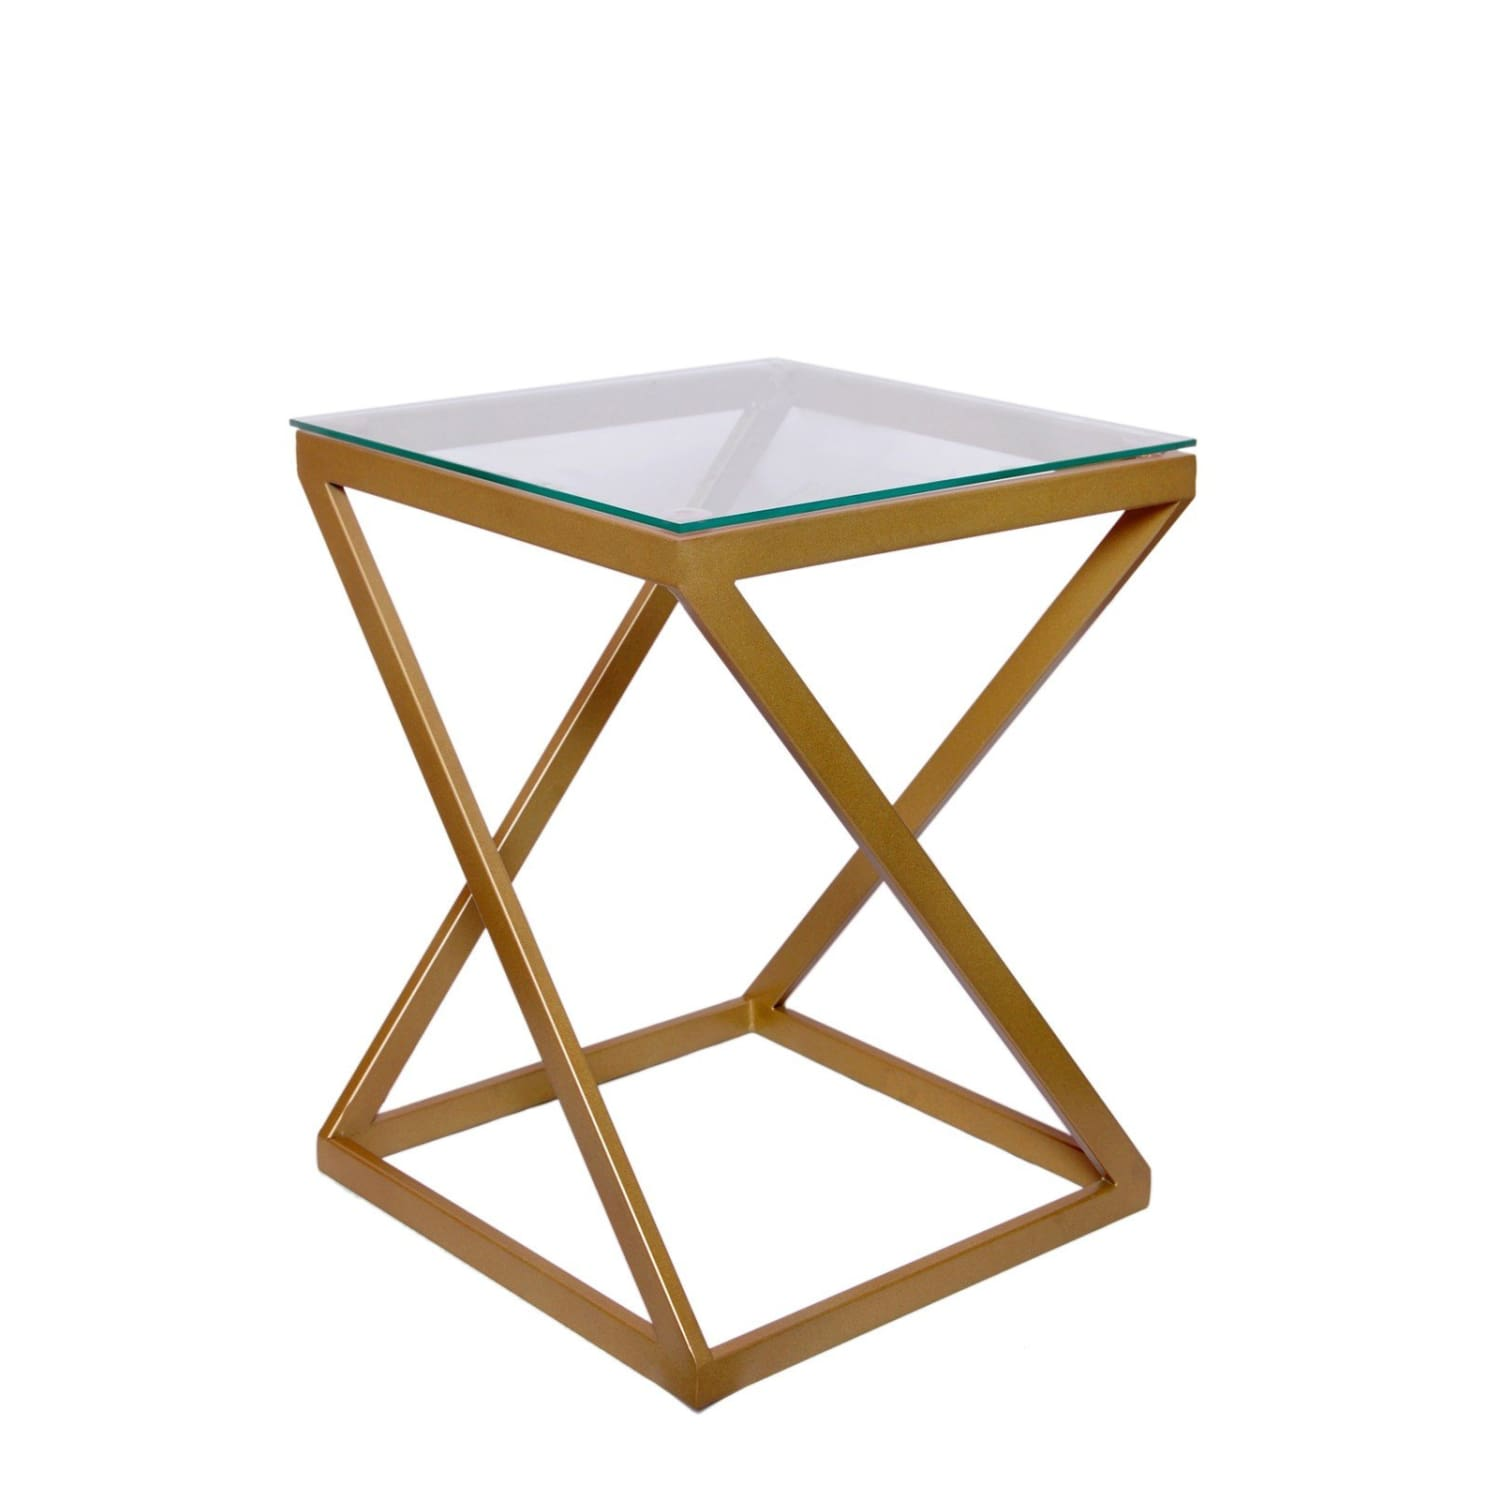 Table d'appoint - Mantra 140 Clair - Gold